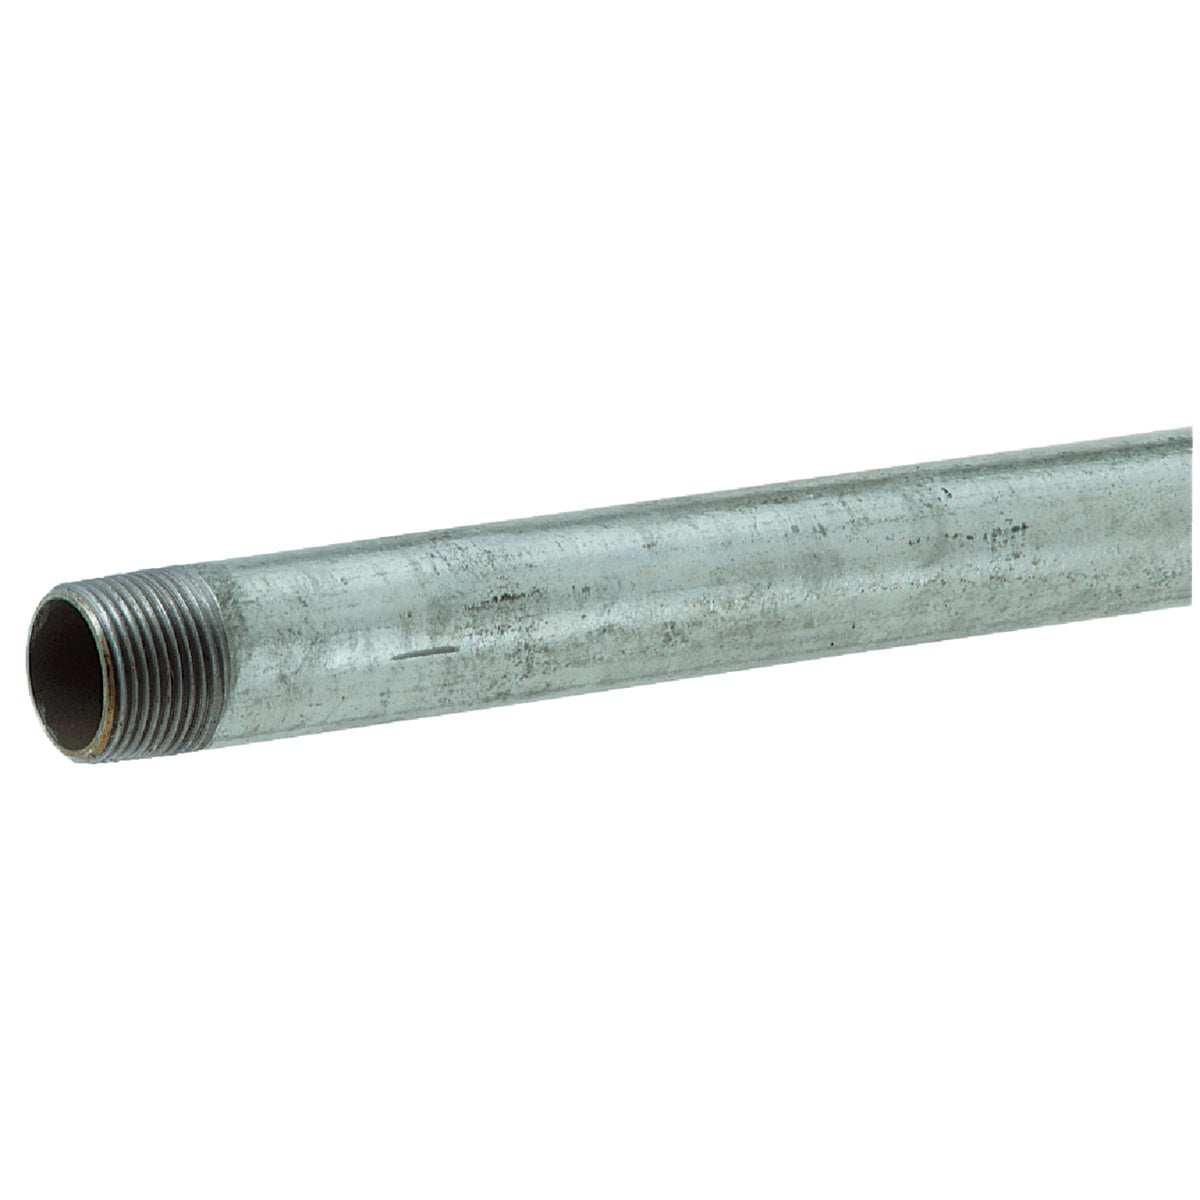 3/4X48 GALV RDI-CT PIPE - 3/4X48 by Southland Pipe Nippl